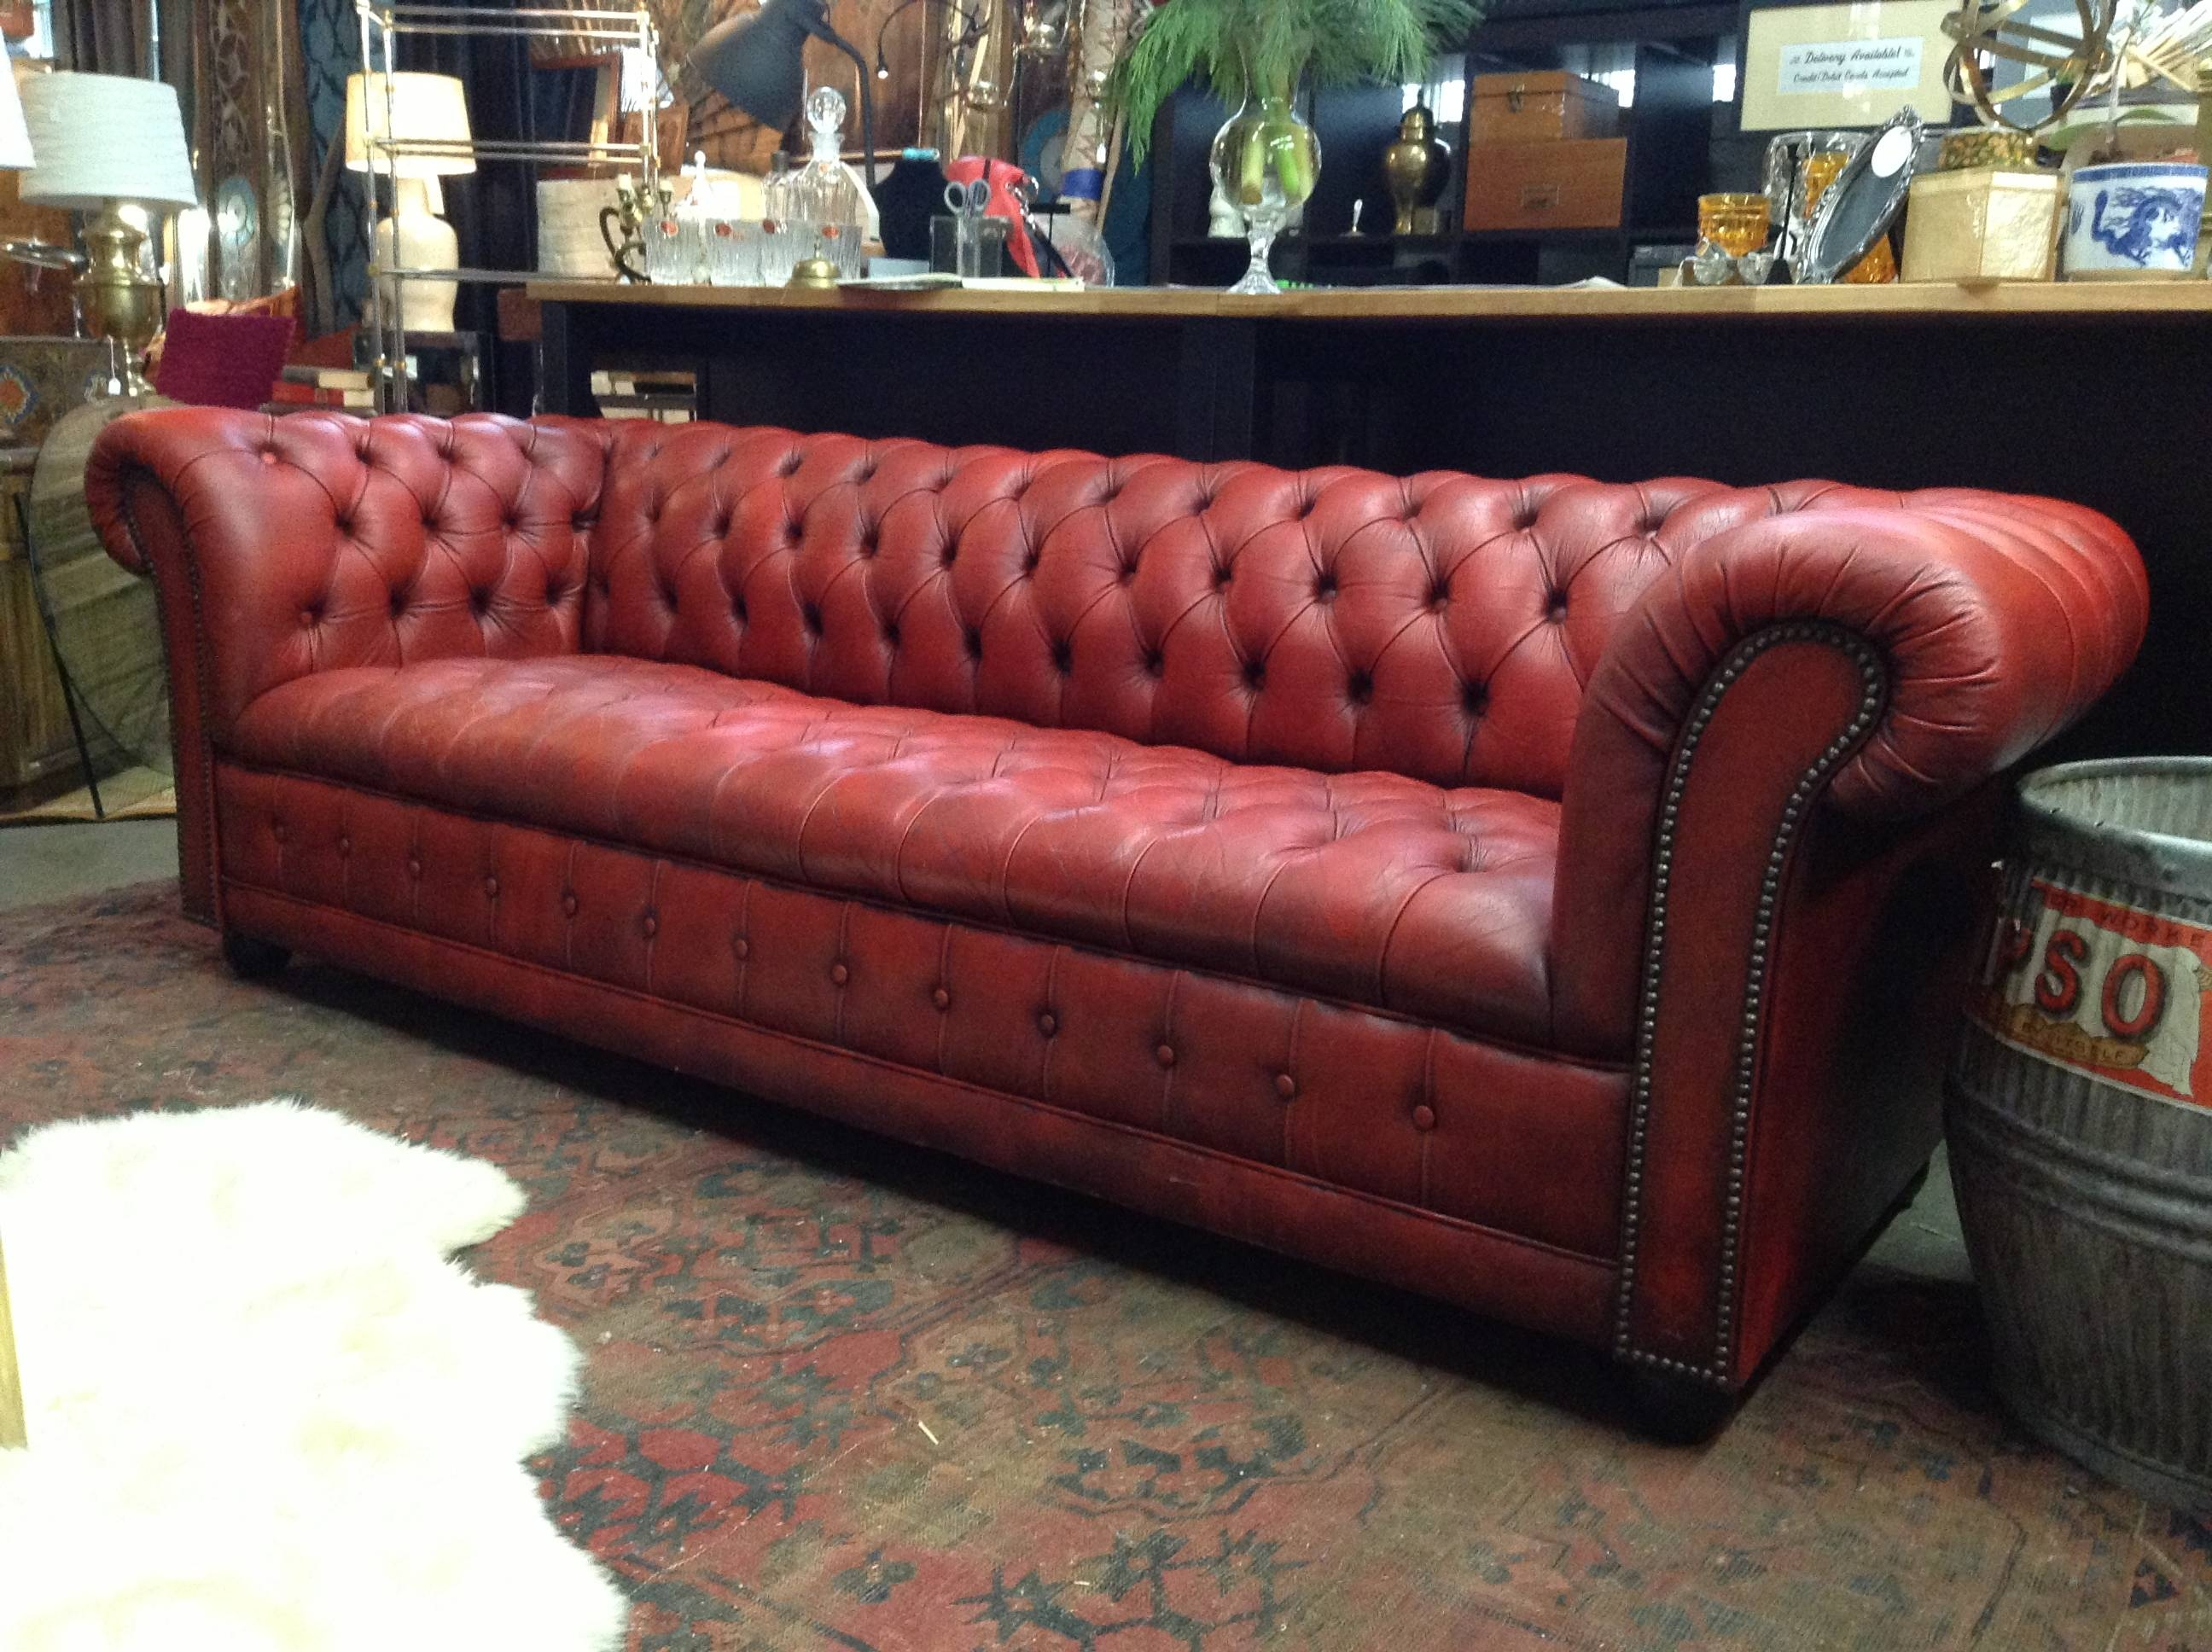 Sofa : Tufted Leather Chesterfield Sofa Home Design Ideas With Red Leather Chesterfield Sofas (View 14 of 15)